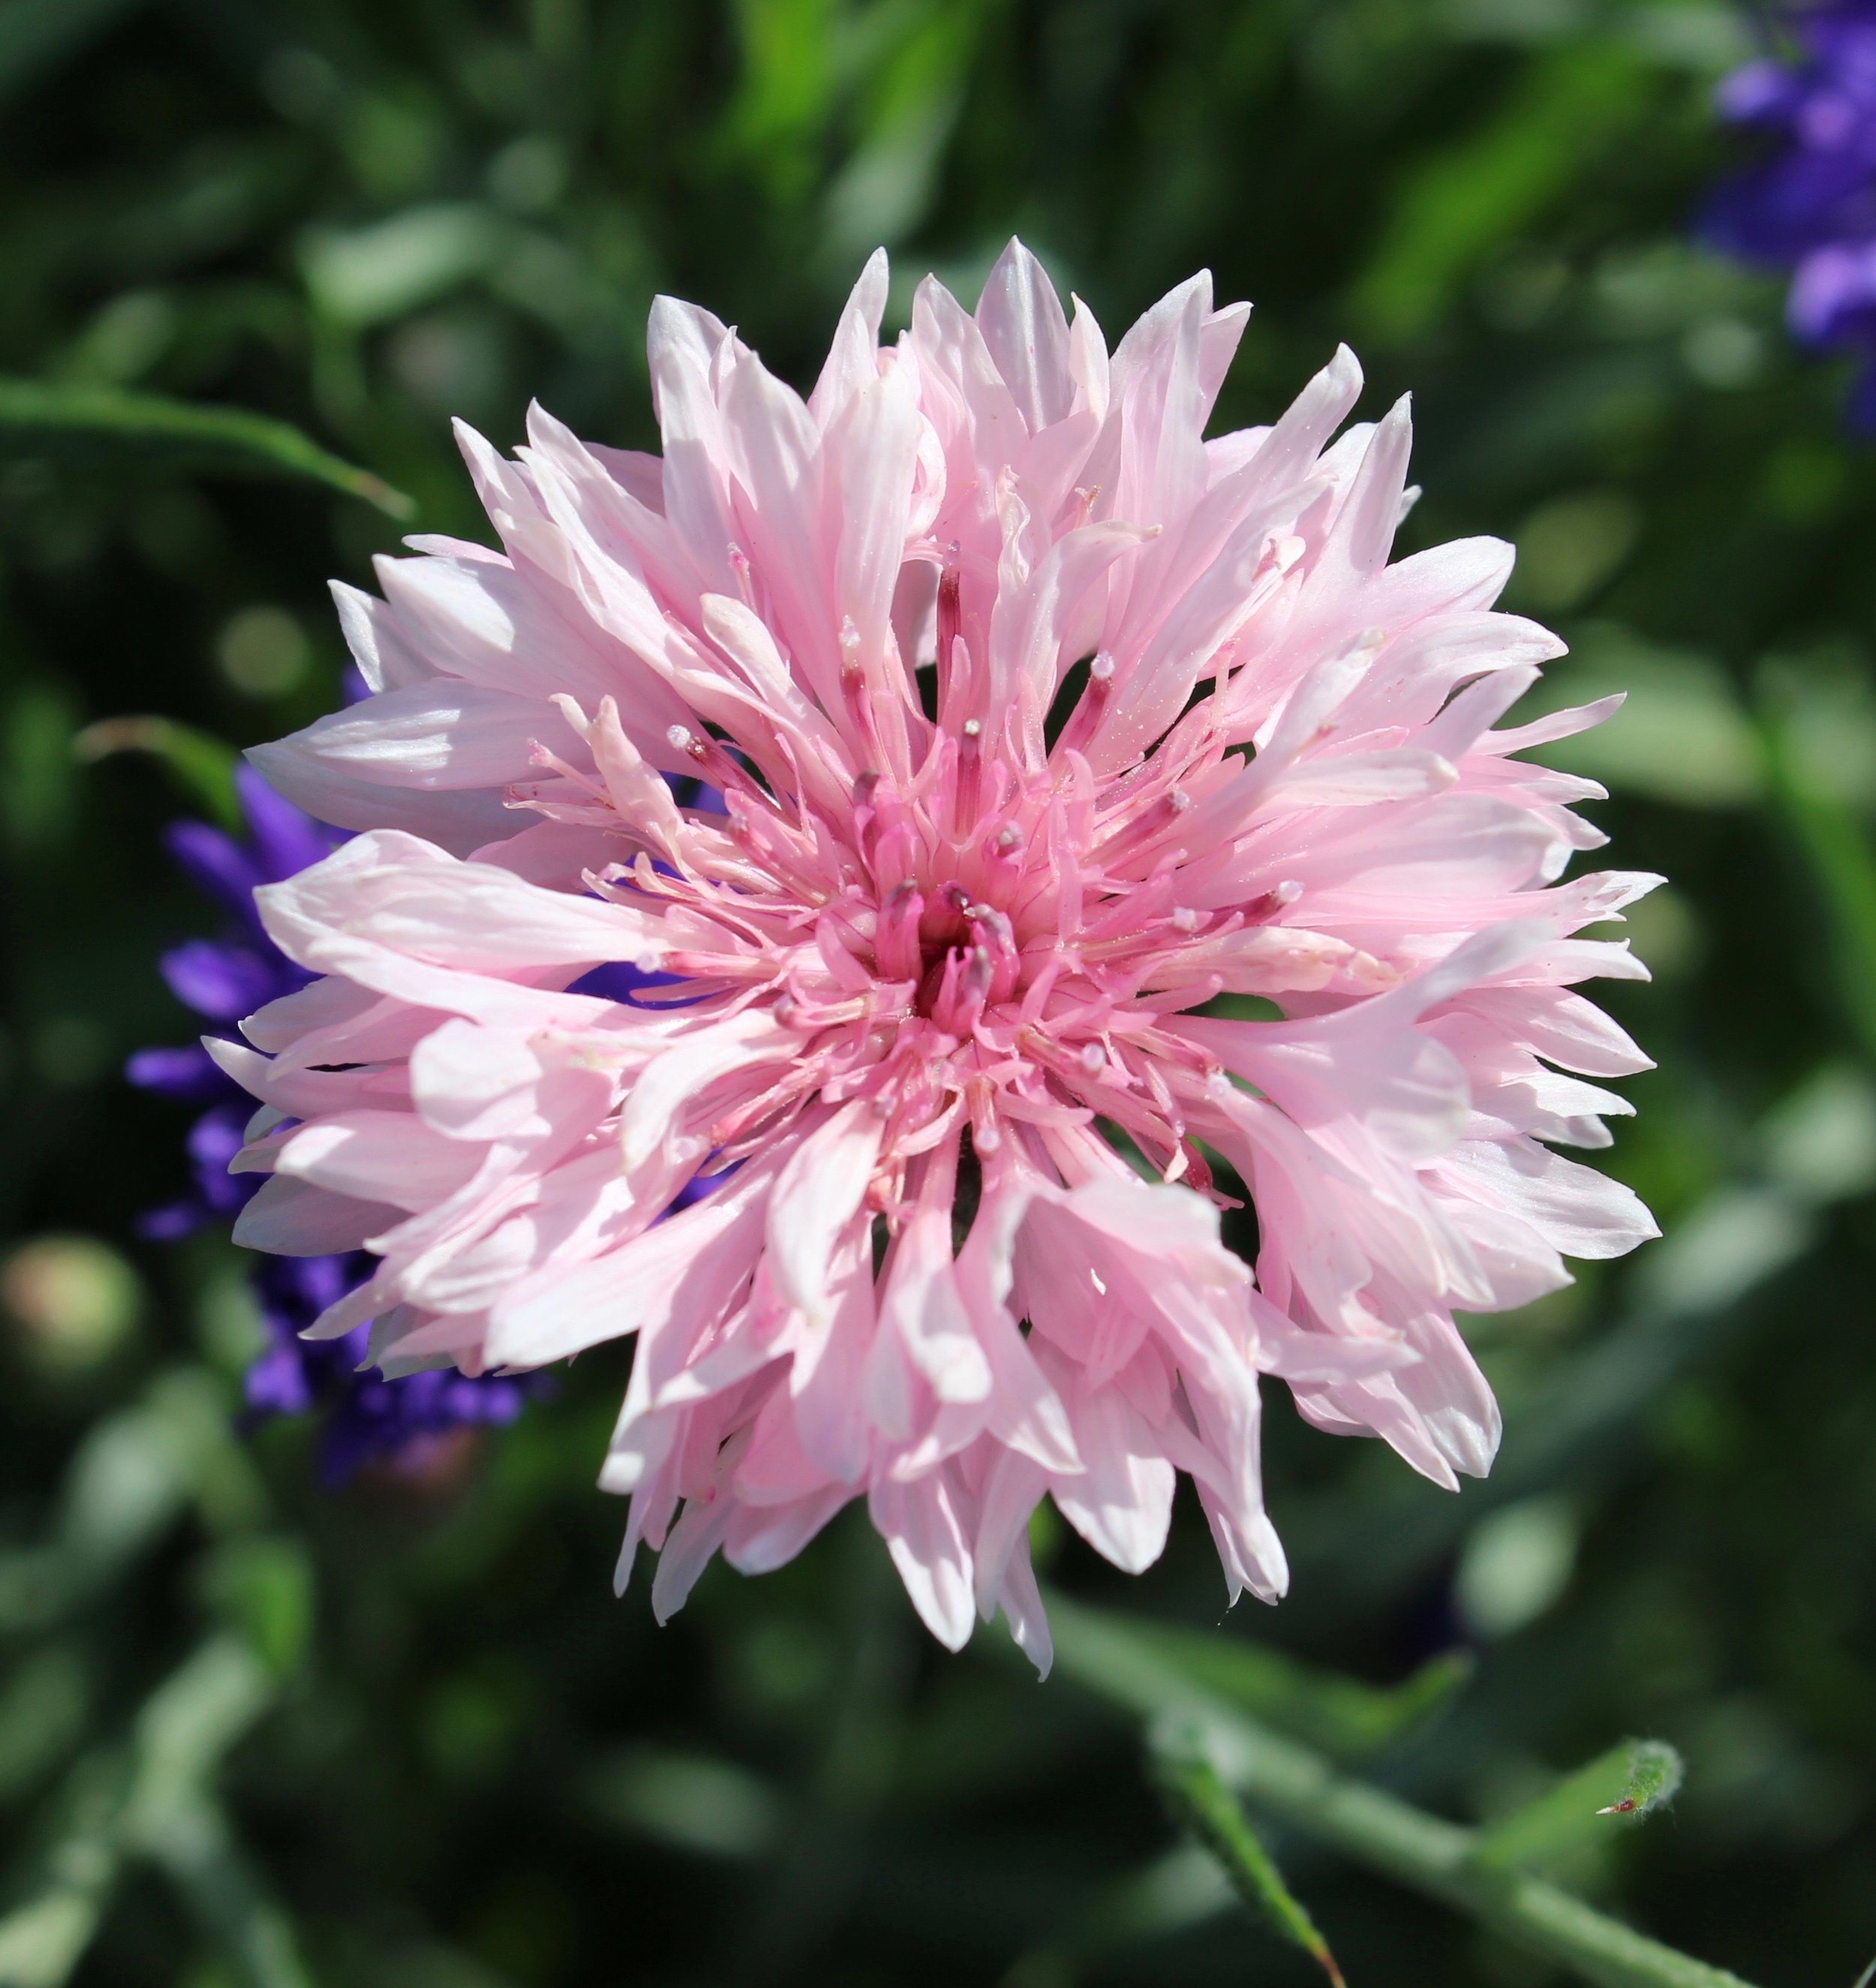 REF:19 'centaurea cyanus'  bleuet (rose), pink cornflowers  flower petals can be scattered over salads, cakes. add a spicy tone to rice, pancakes or in summer drinks.